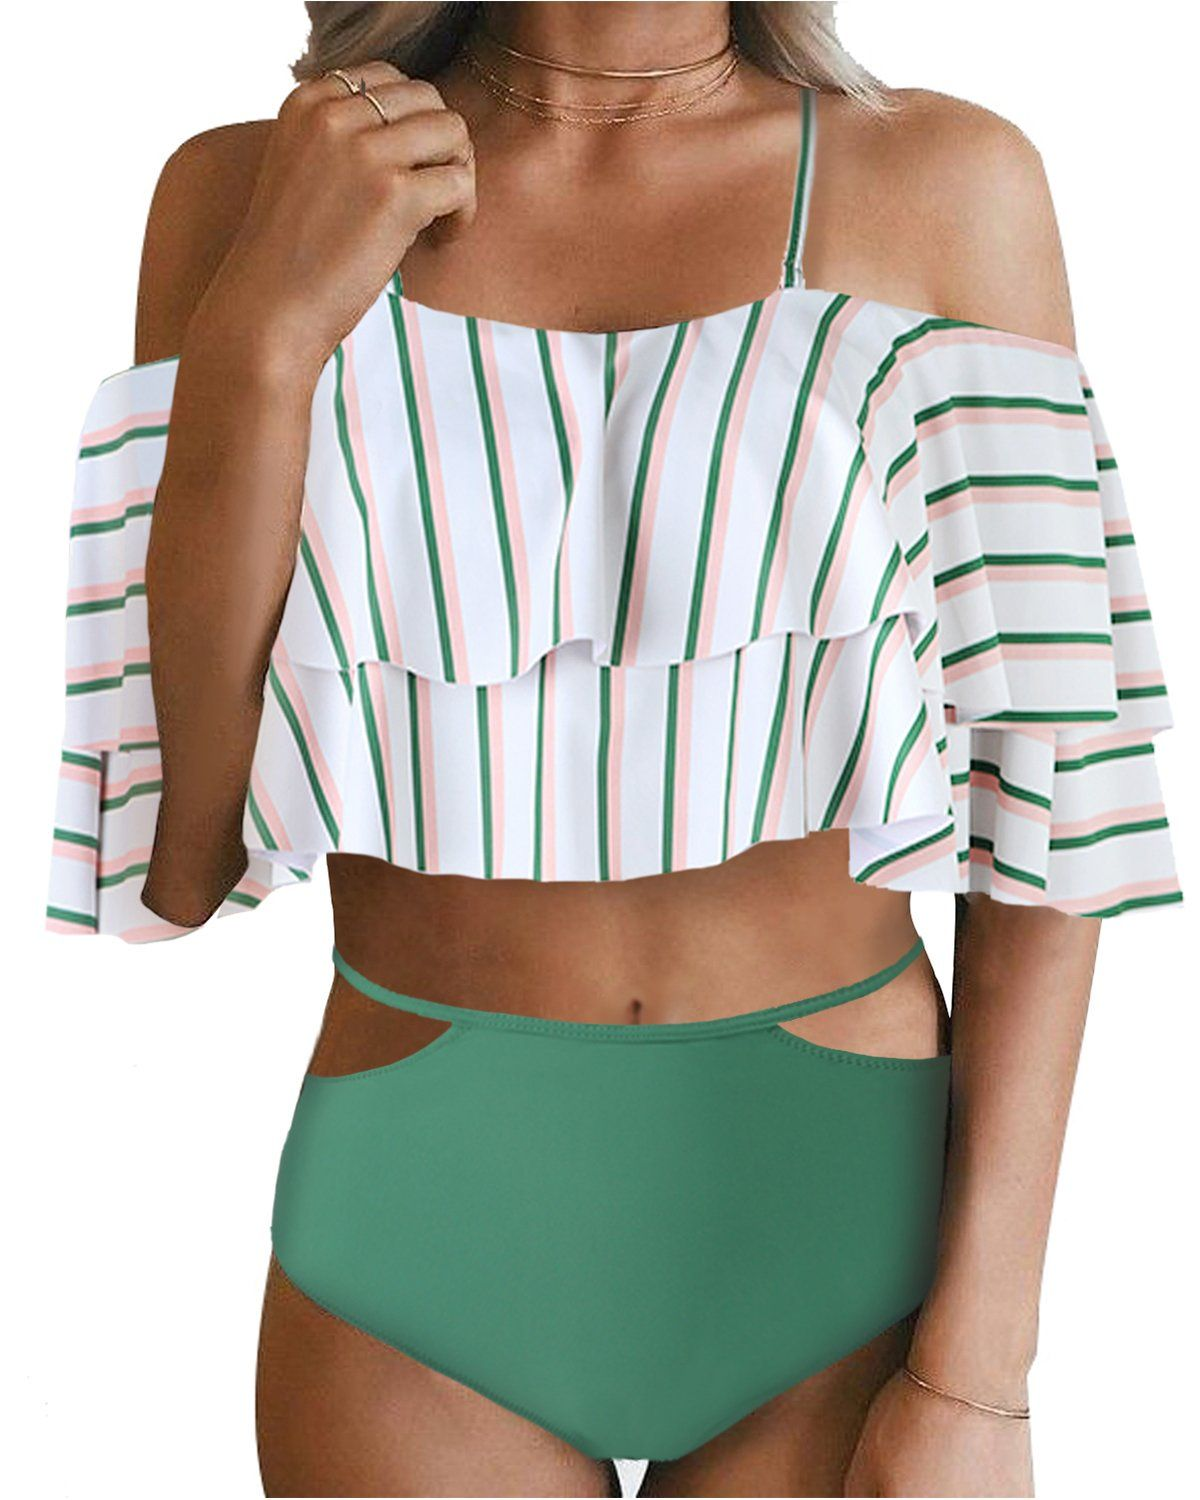 485374c135b59 Off Shoulder Ruffled Two Piece - Tempt Me